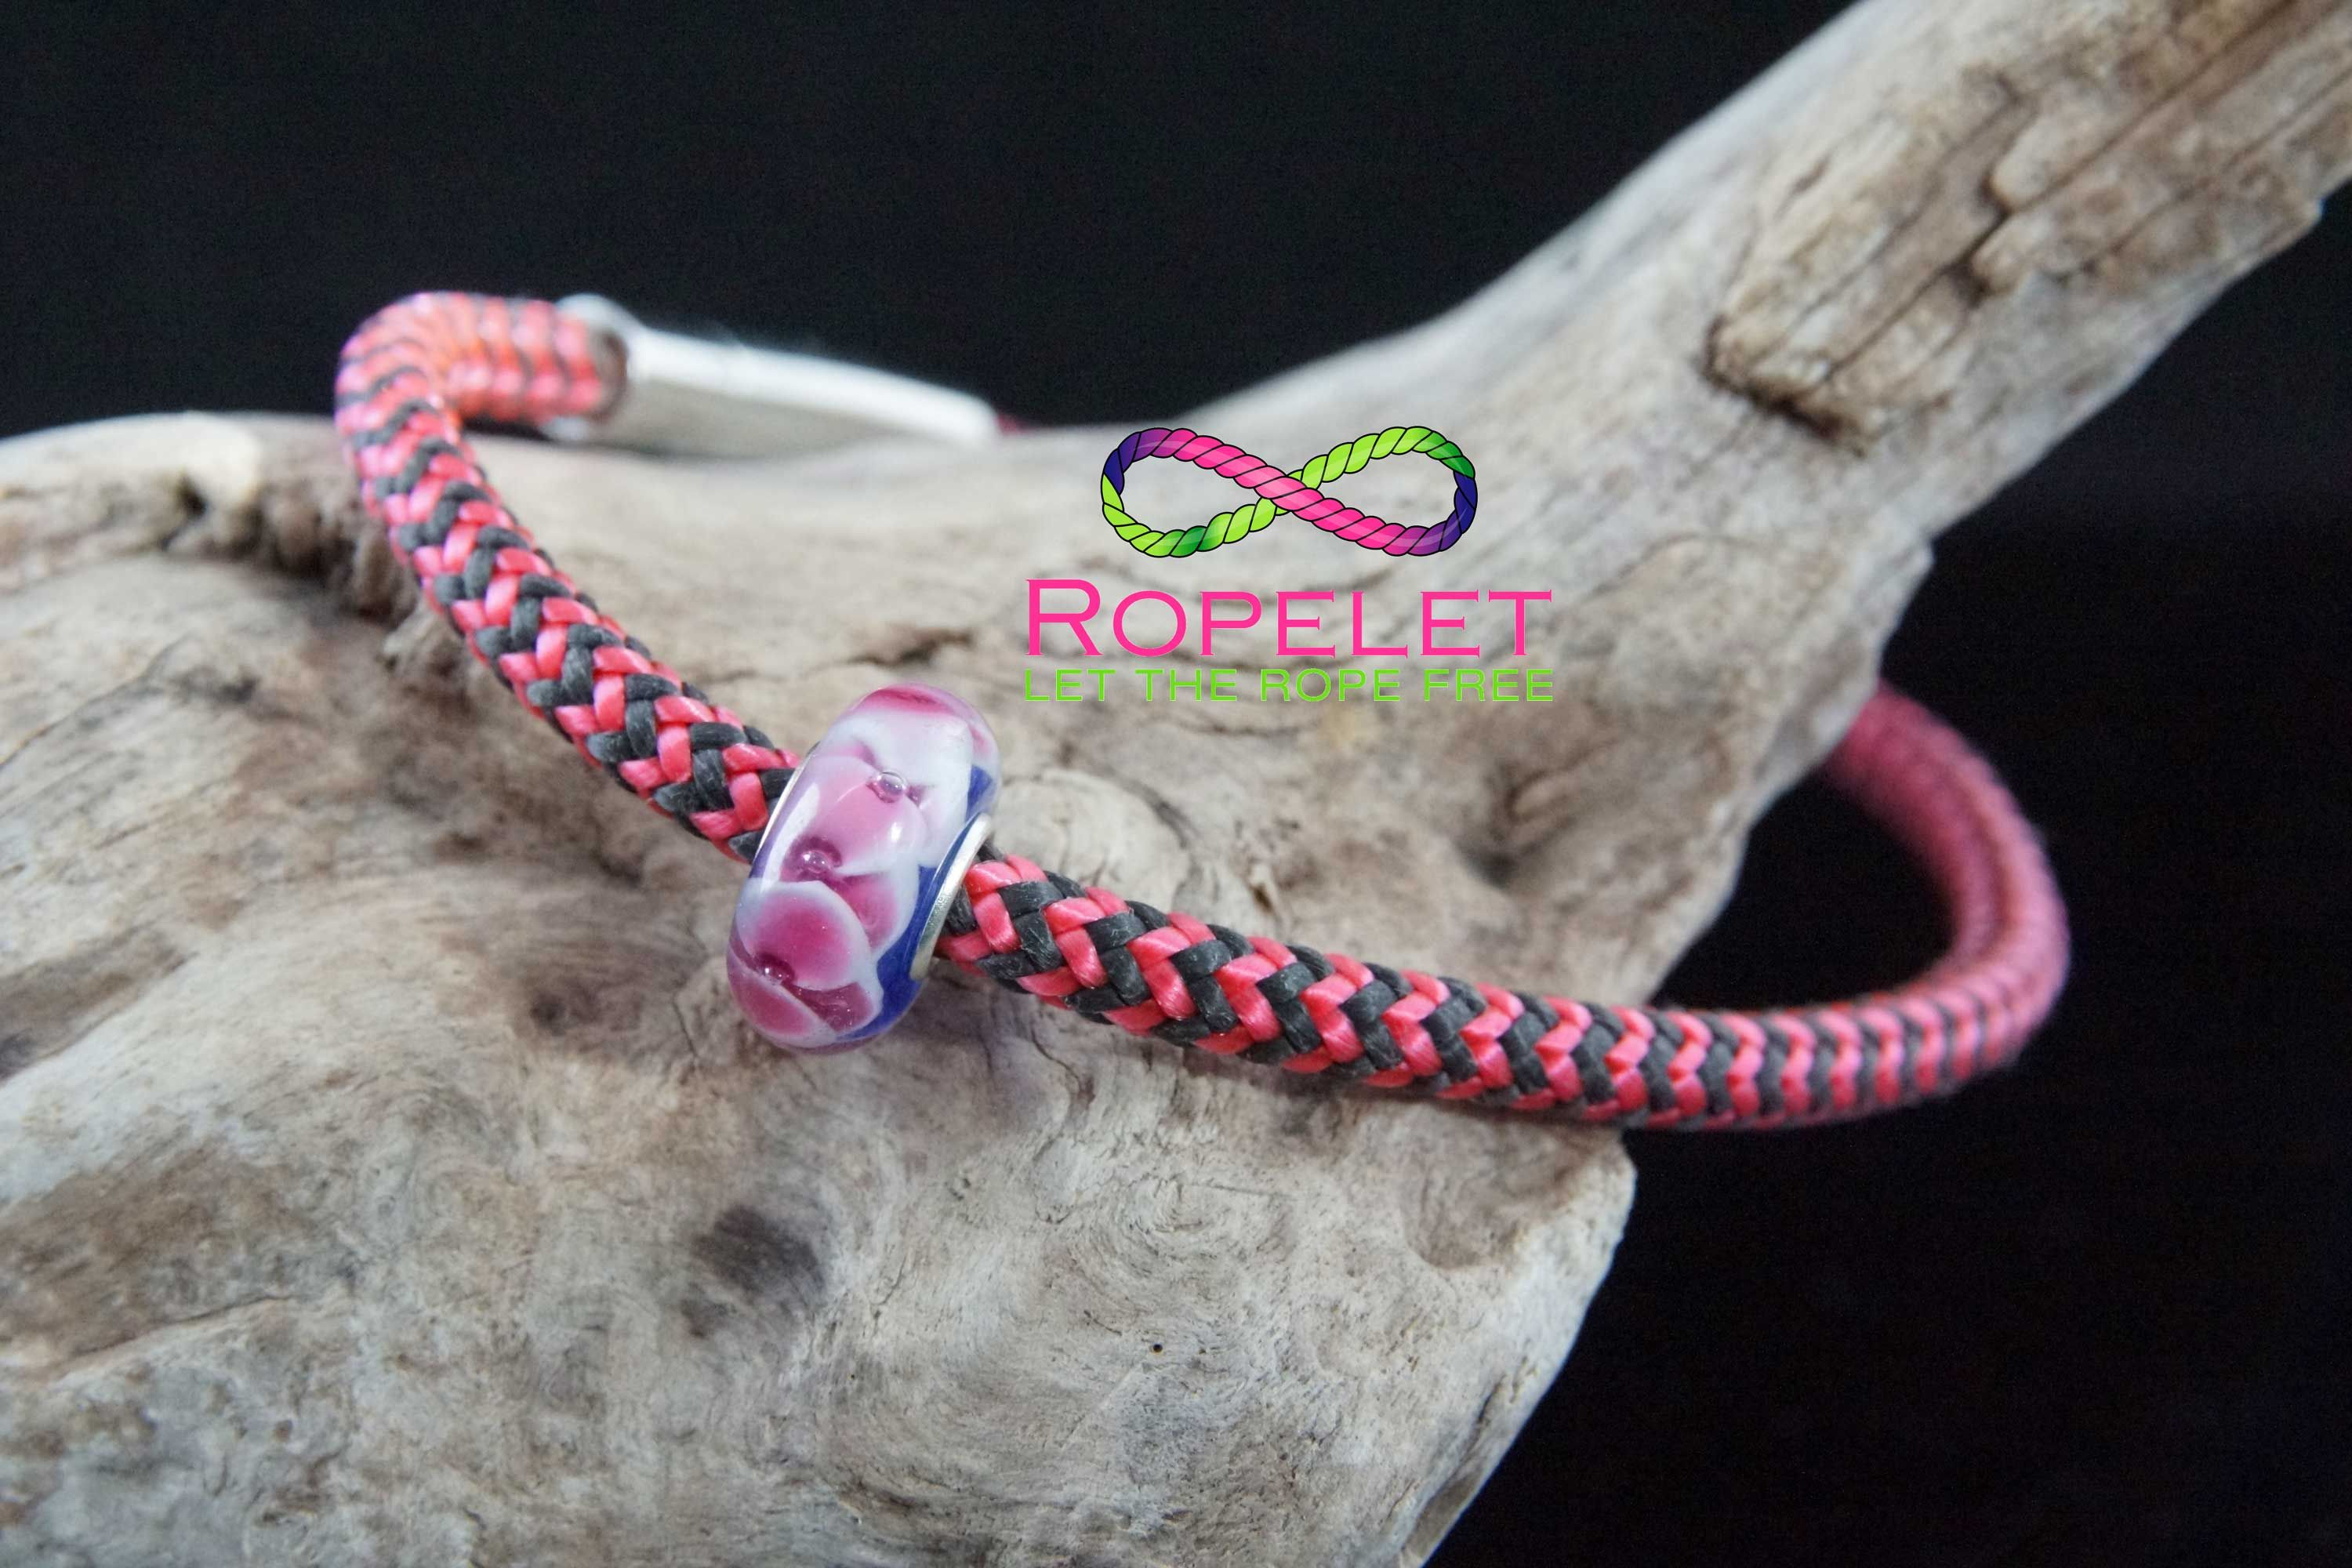 OMG! Get one of our Limited Edition Ropelets for your wrist, the fashionable handmade rope bracelets by www.ropelet.co.uk. Made to your order you wont find them on the highstreet! #ropelet #ladiesfashion #ladiesbracelet